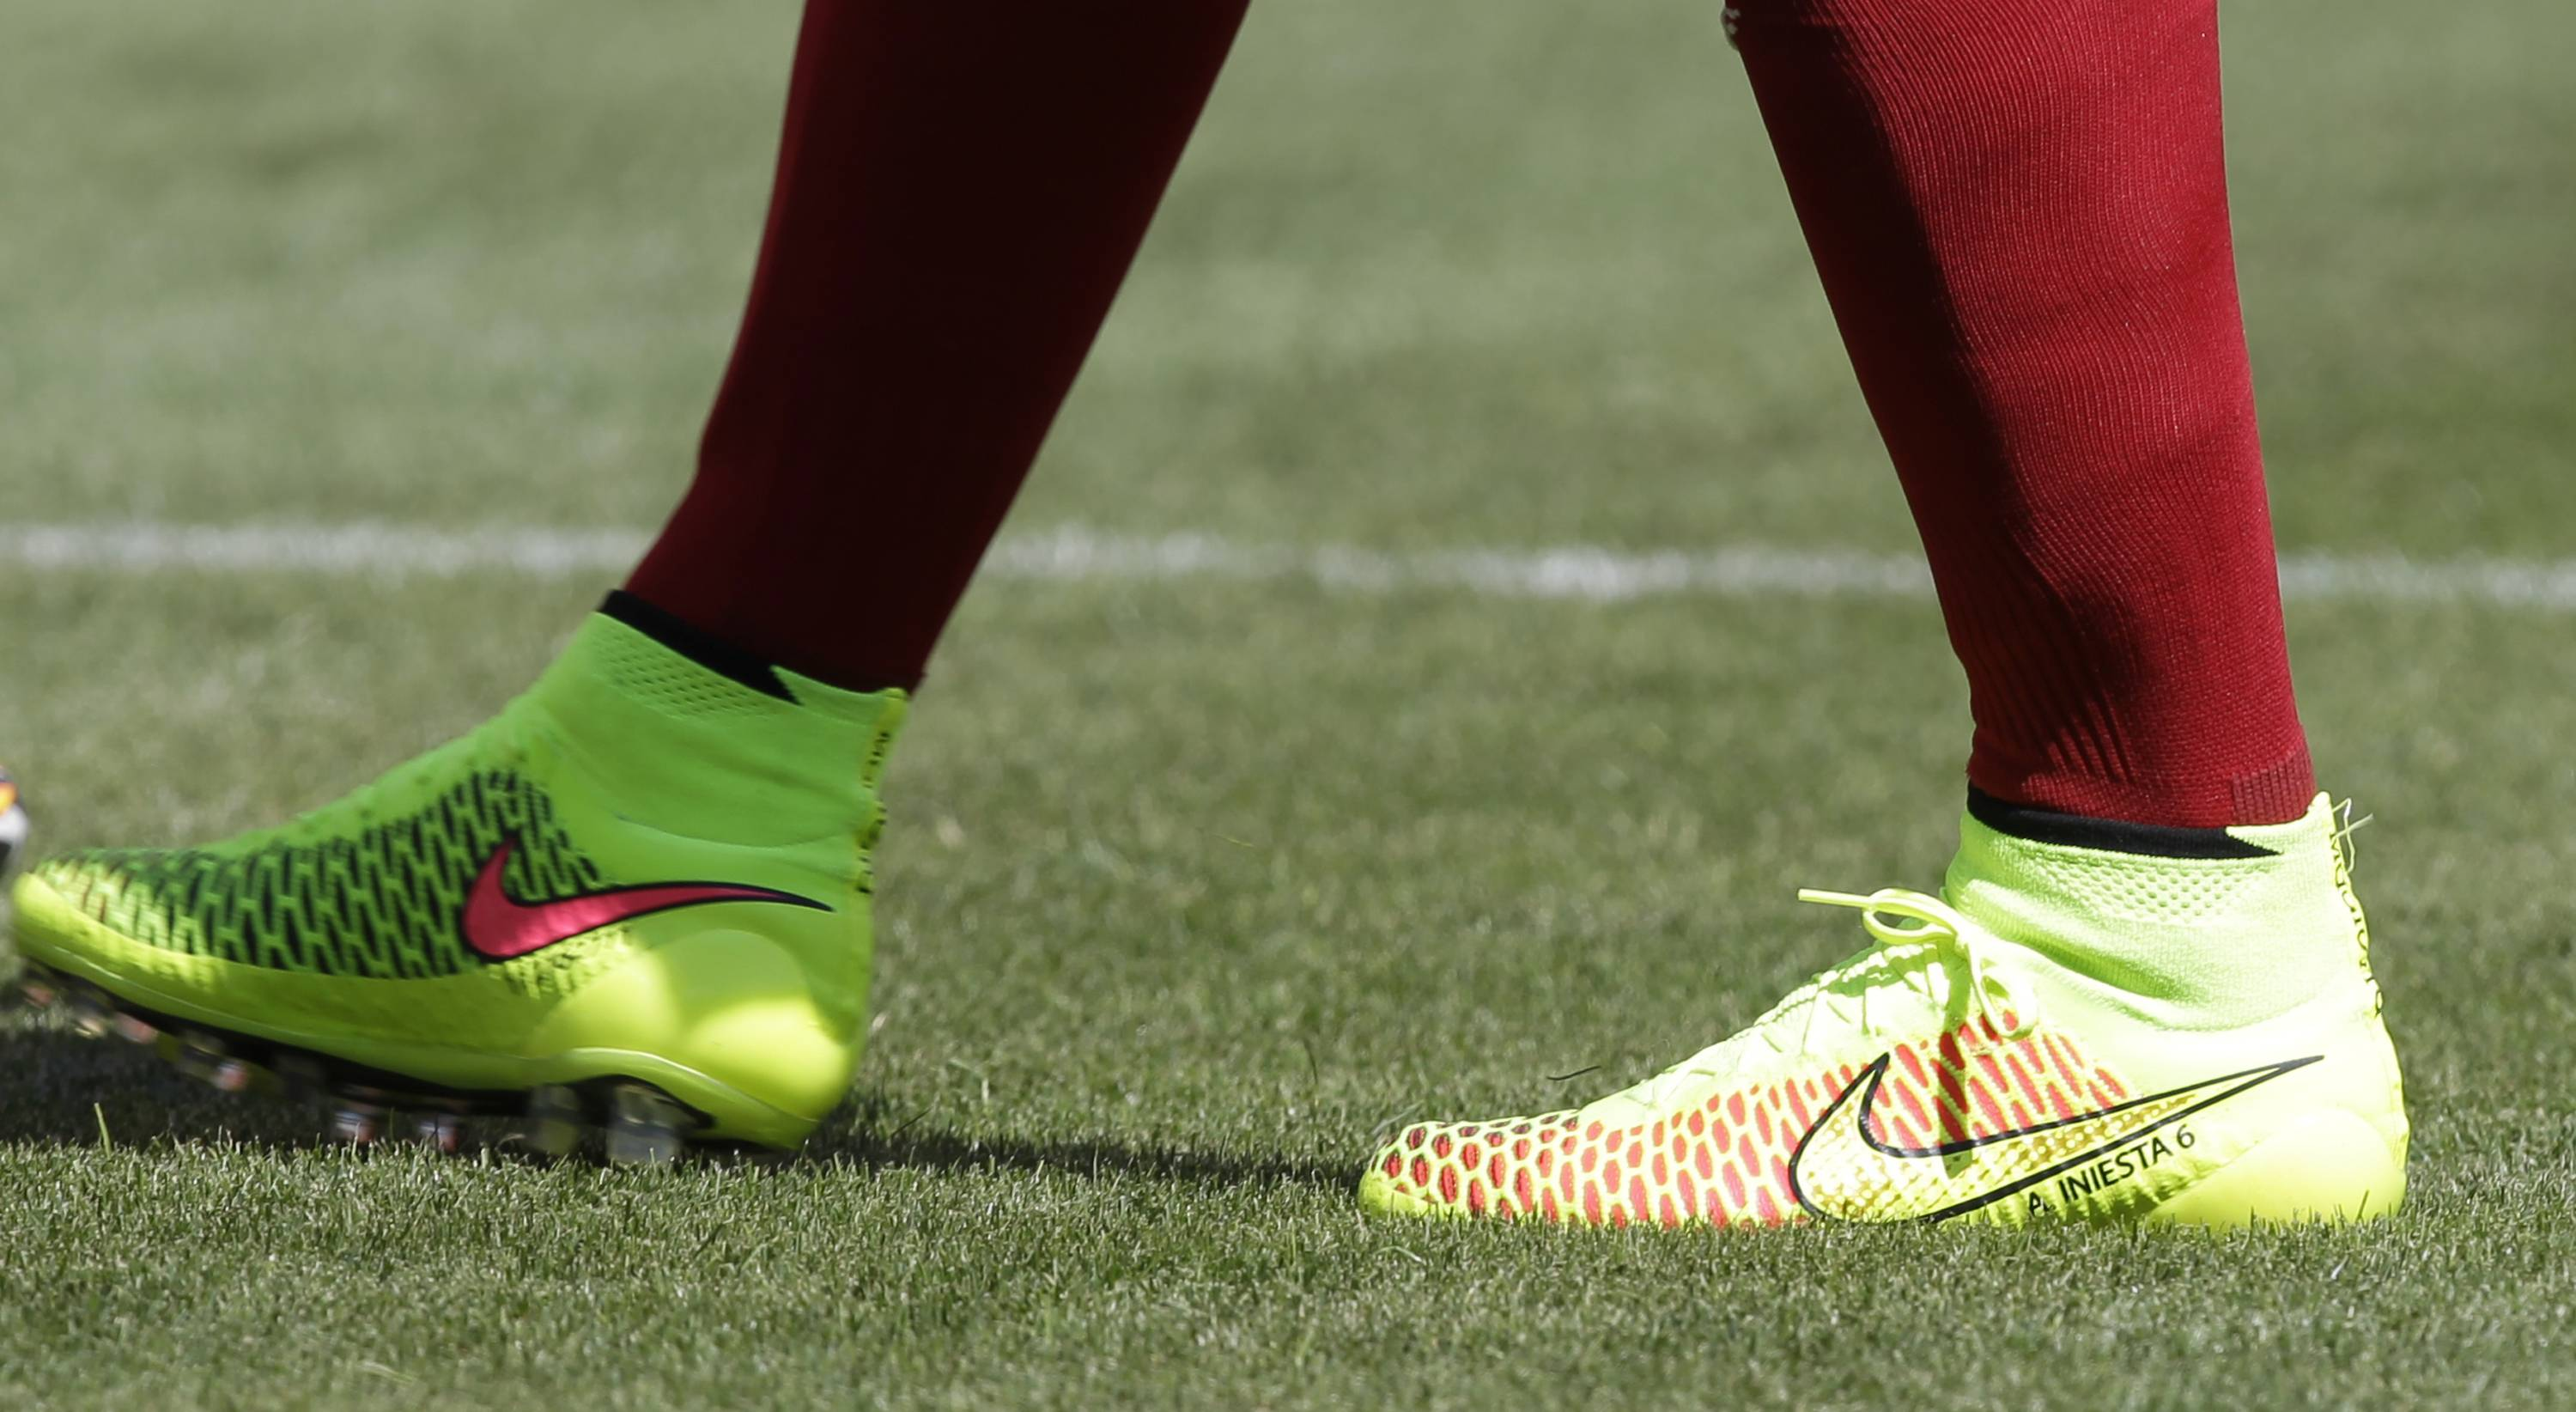 Spain's Andres Iniesta wears his Nike Magista cleats. More athletes are wearing Nike's shoes at the World Cup than all other brands combined, with more than a third of them wearing the Magista cleats.